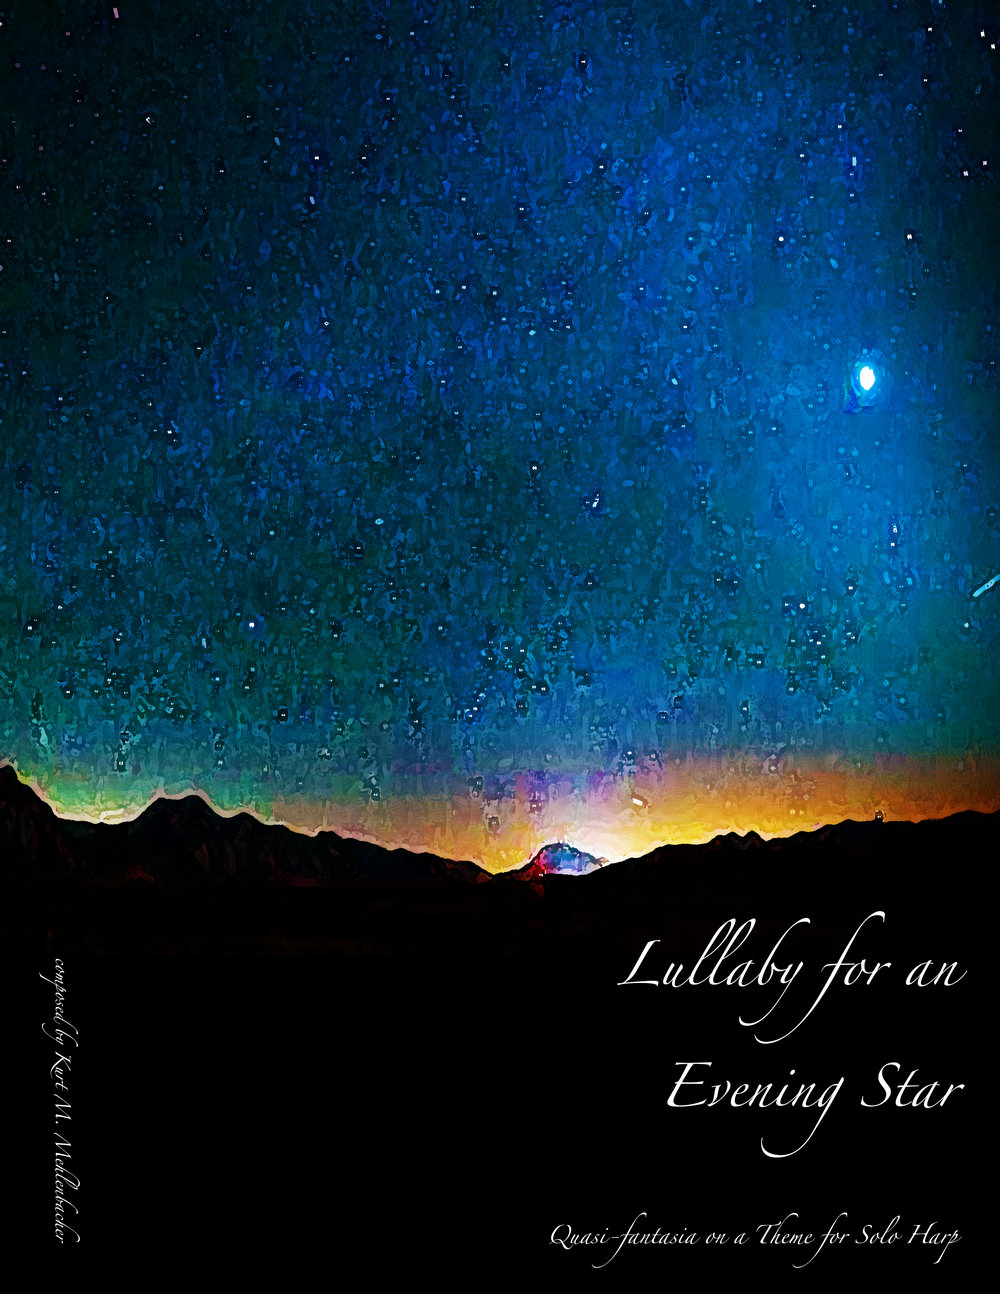 Lullaby for an Evening Star        for solo harp